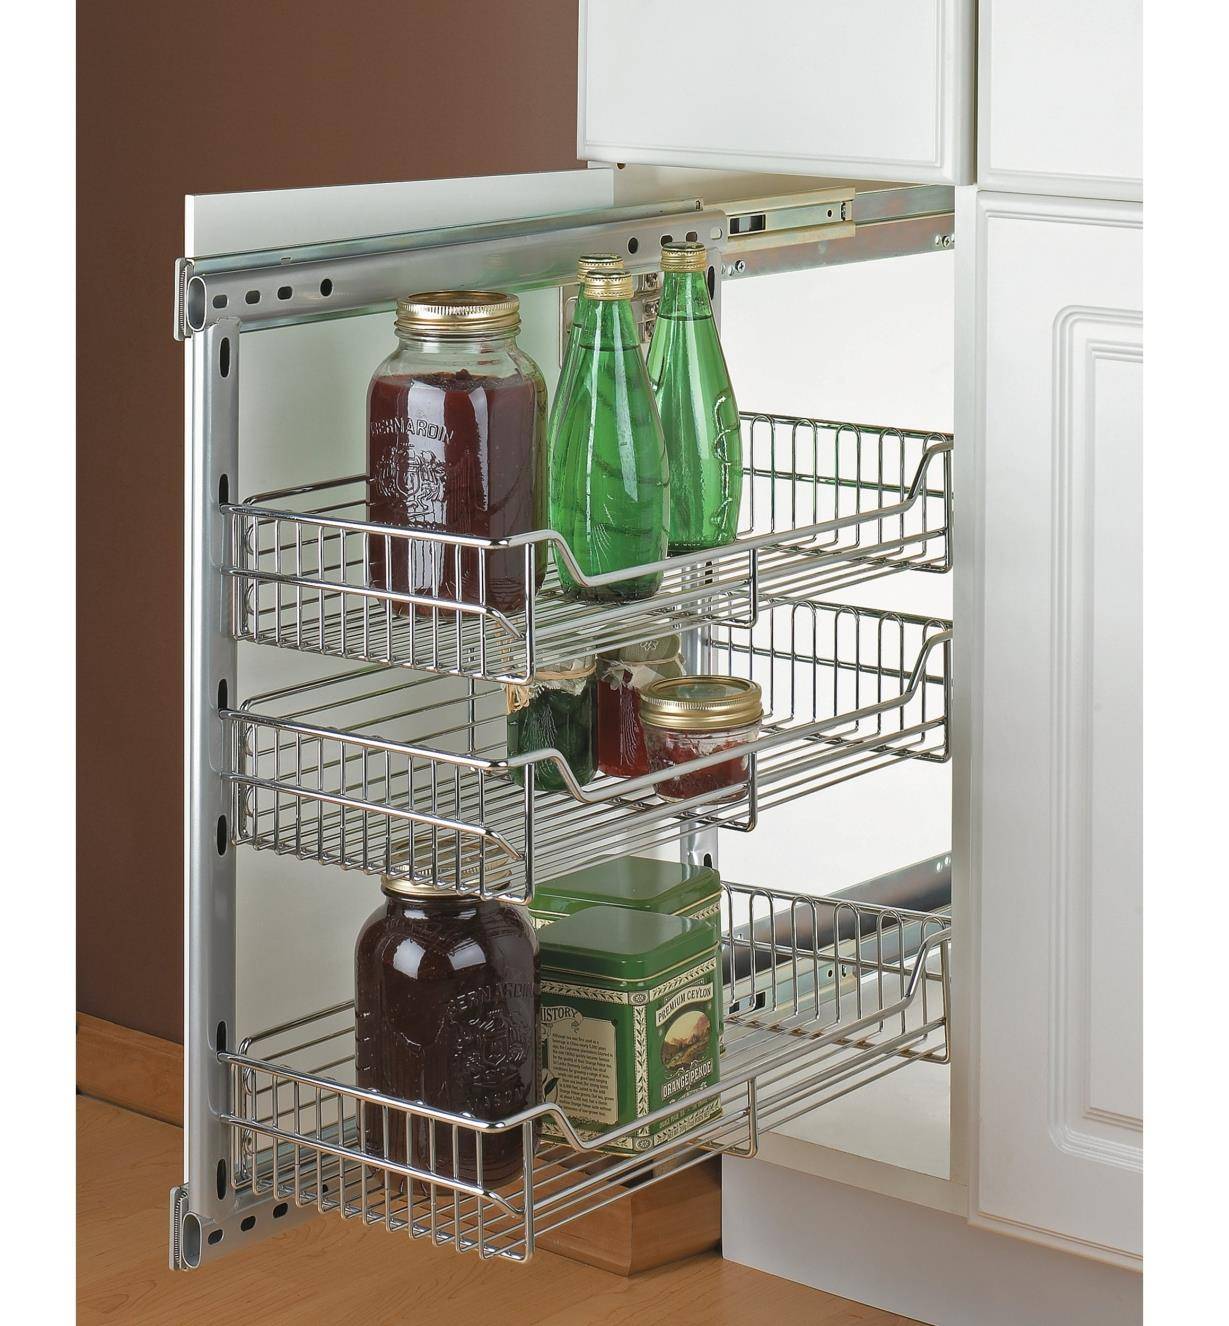 "10"" small side-mount pullout installed in a cabinet, holding jars and bottles"